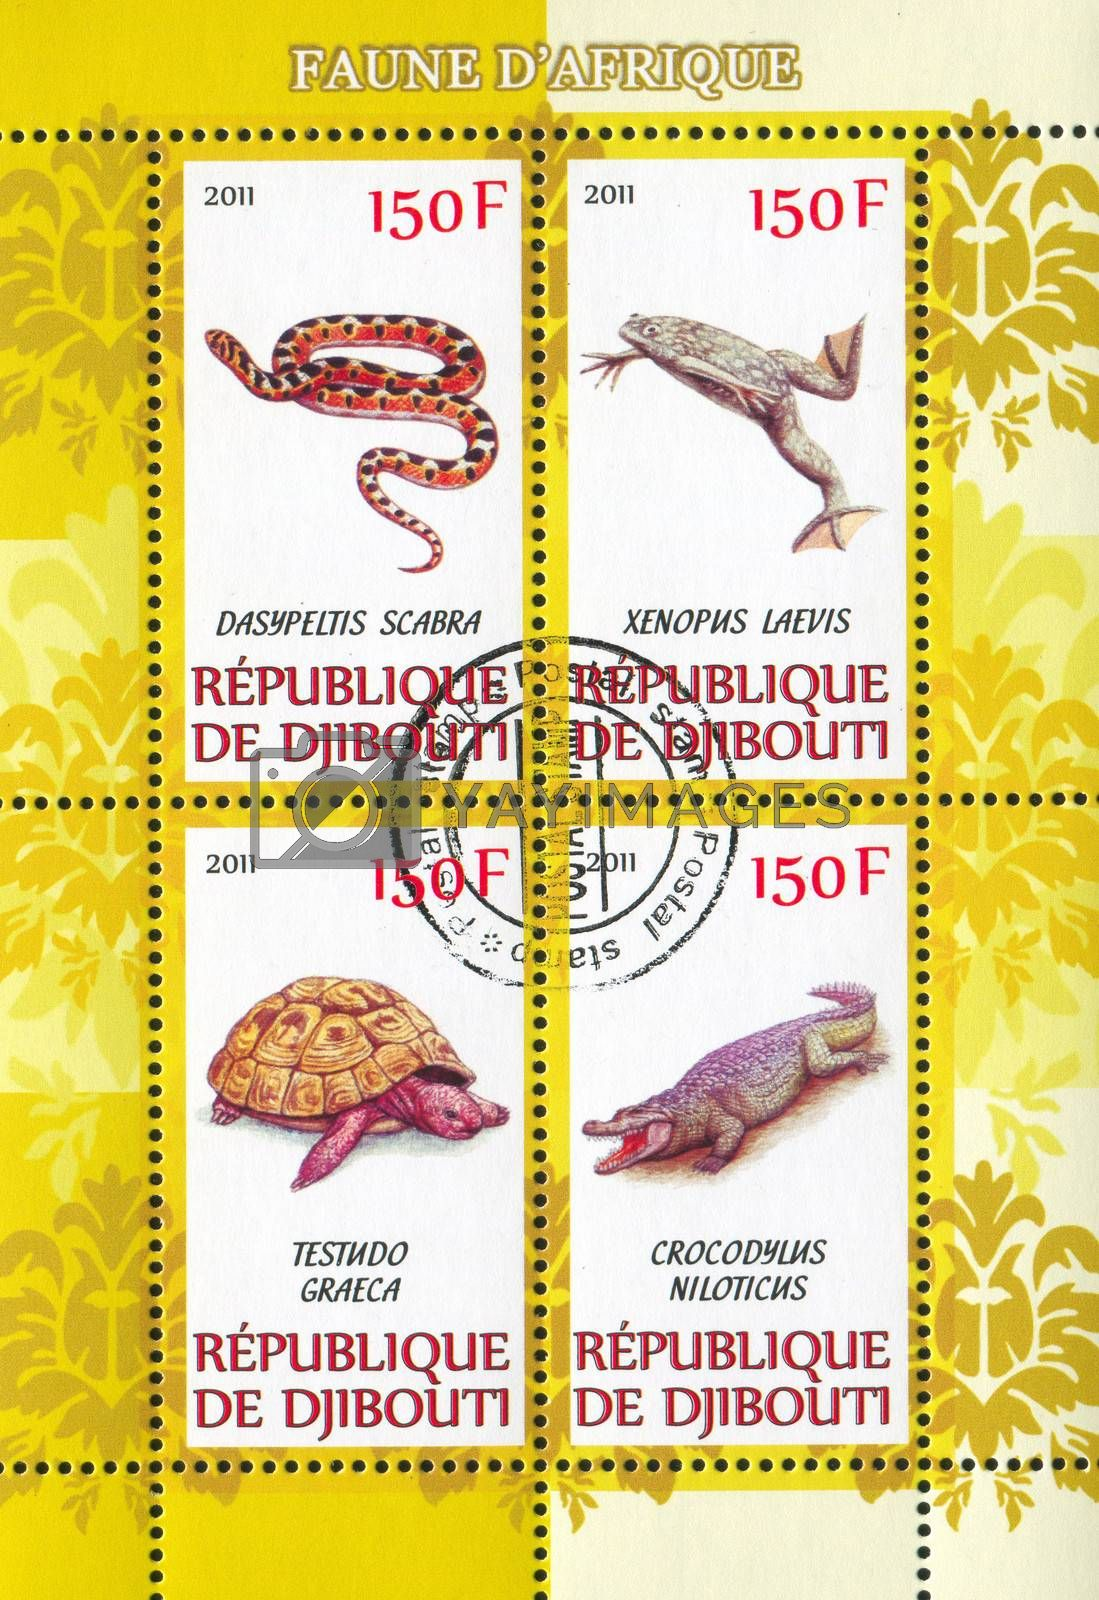 DJIBOUTI - CIRCA 2011: stamp printed by Djibouti, shows animals, circa 2011